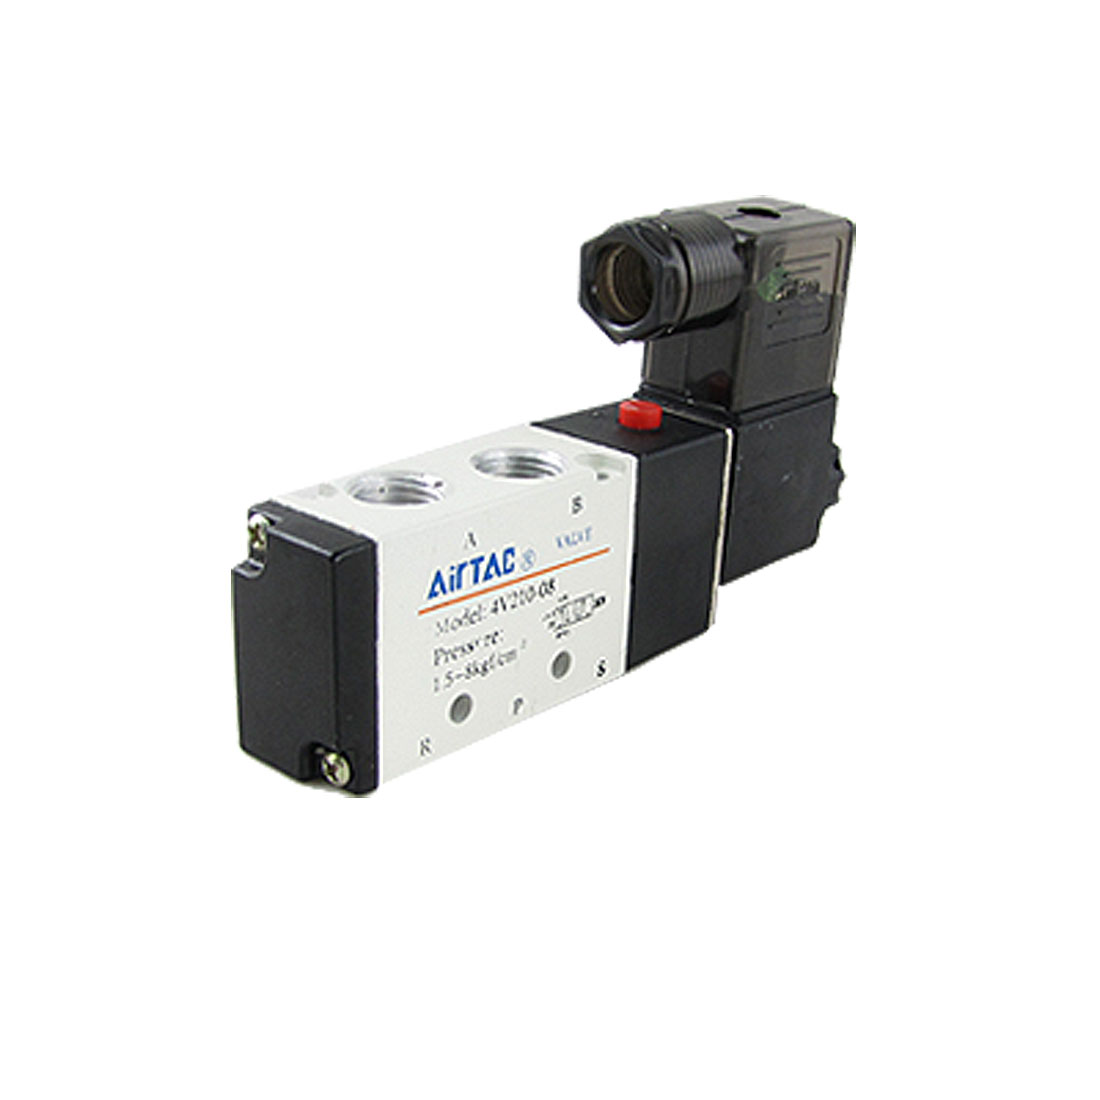 4V210-08 DC 24V 2 Position 5 Way Pneumatic Solenoid Valve